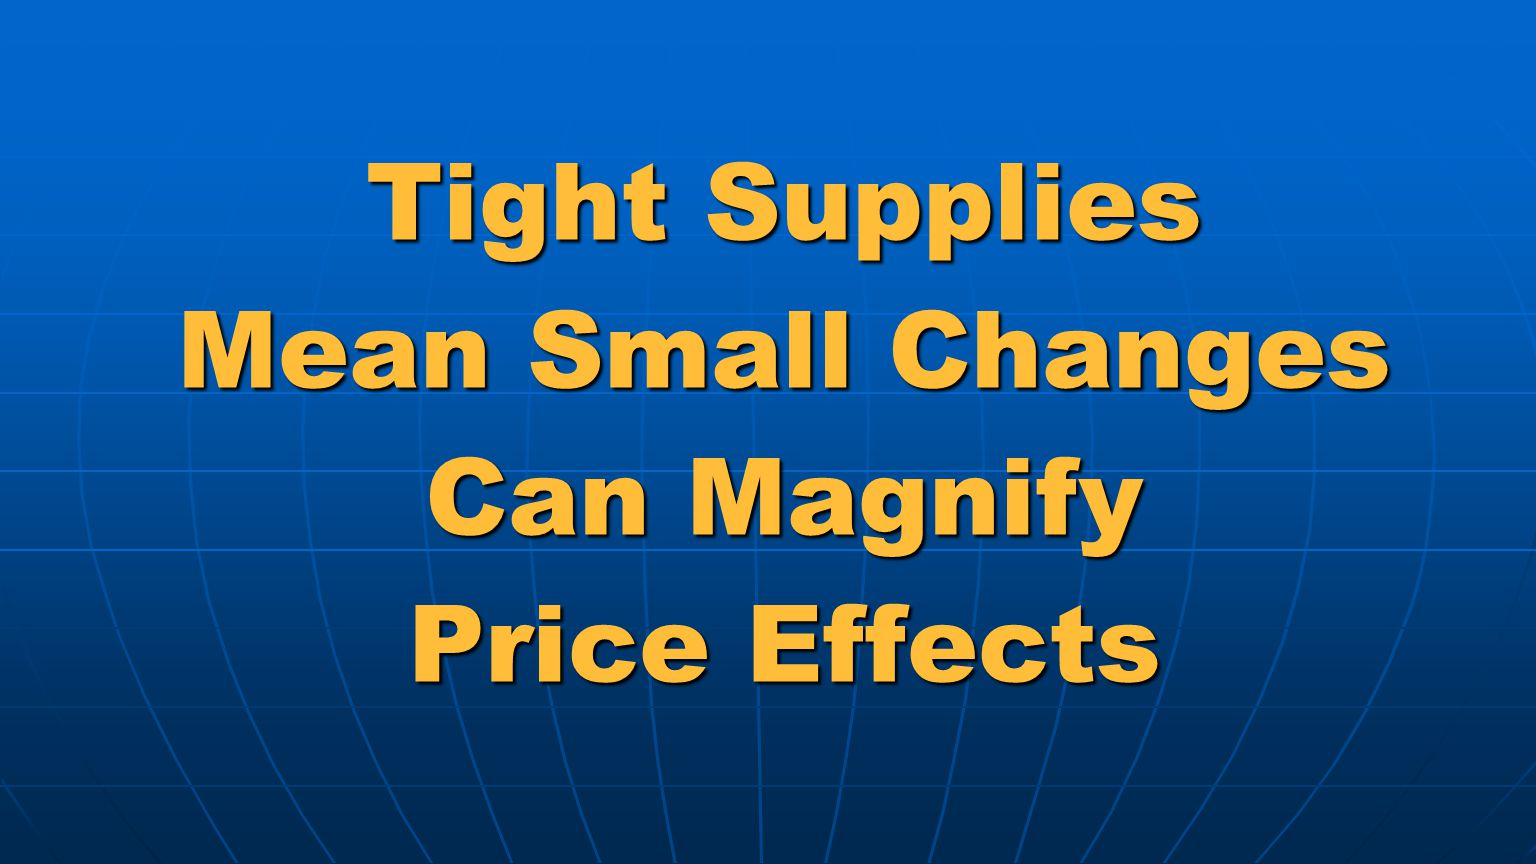 Tight Supplies Mean Small Changes Can Magnify Price Effects